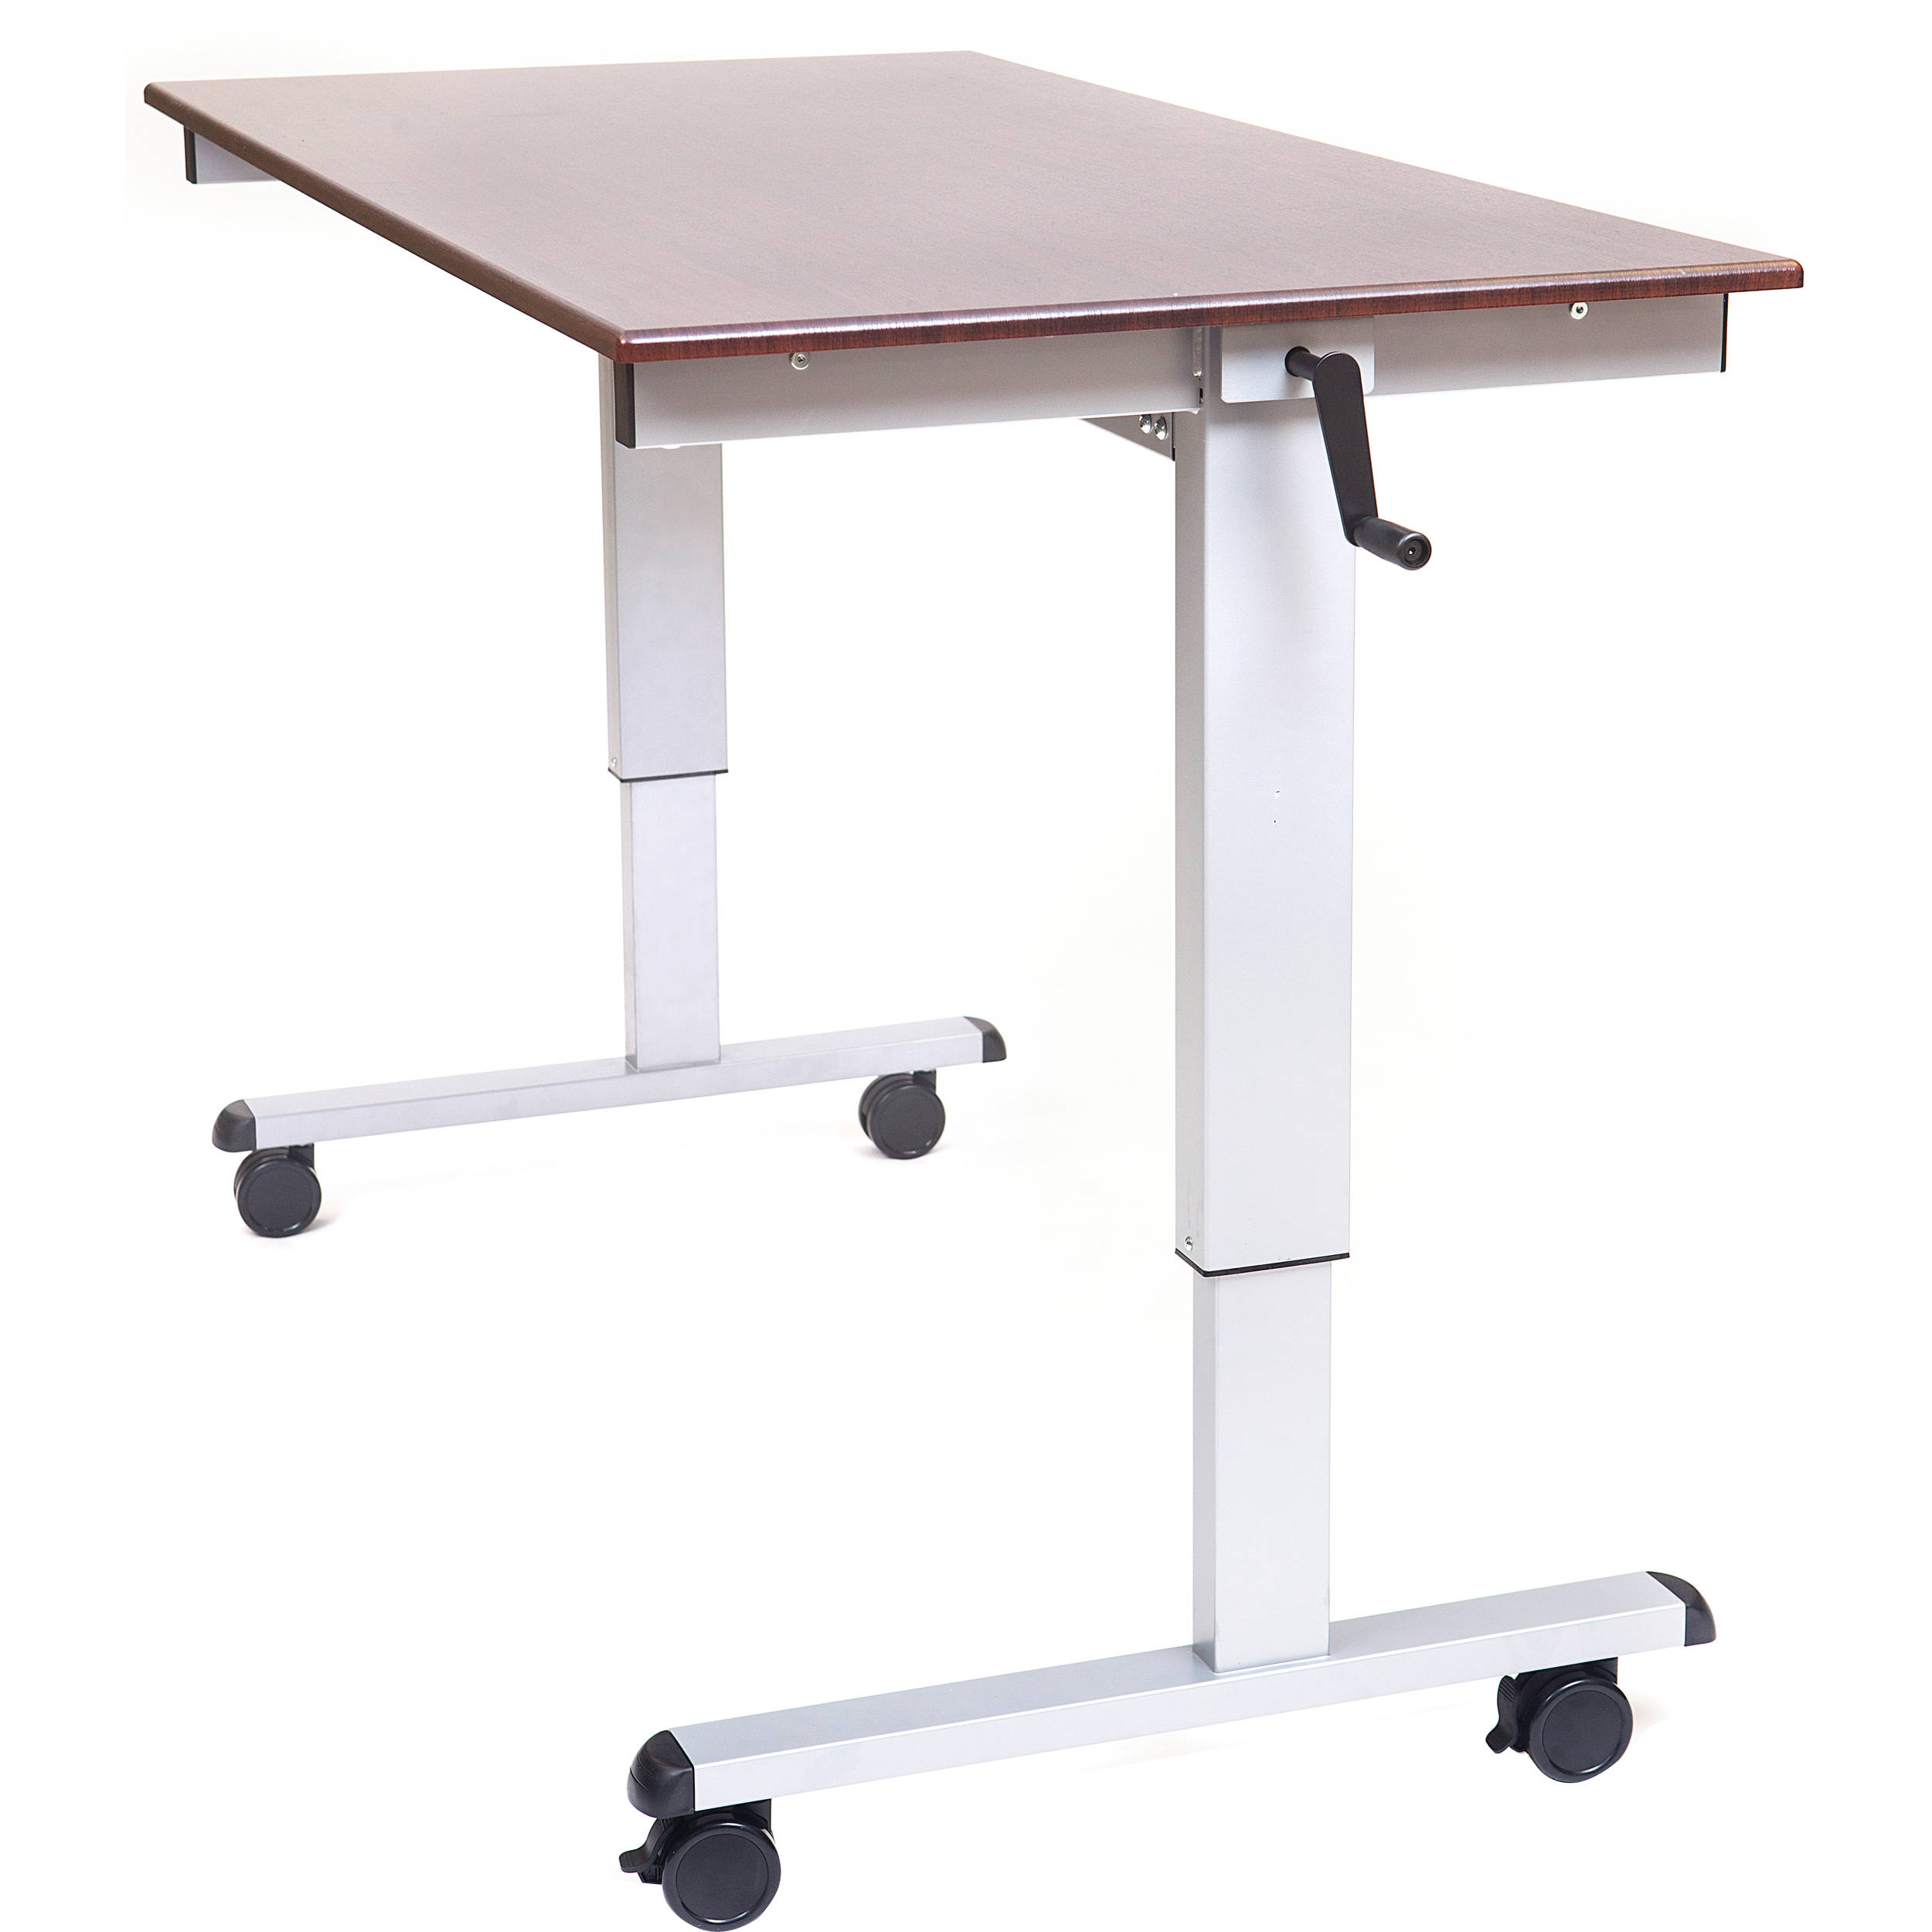 l com desks adjustable shaped onsingularity desk electric pneumatic lift flexispot height